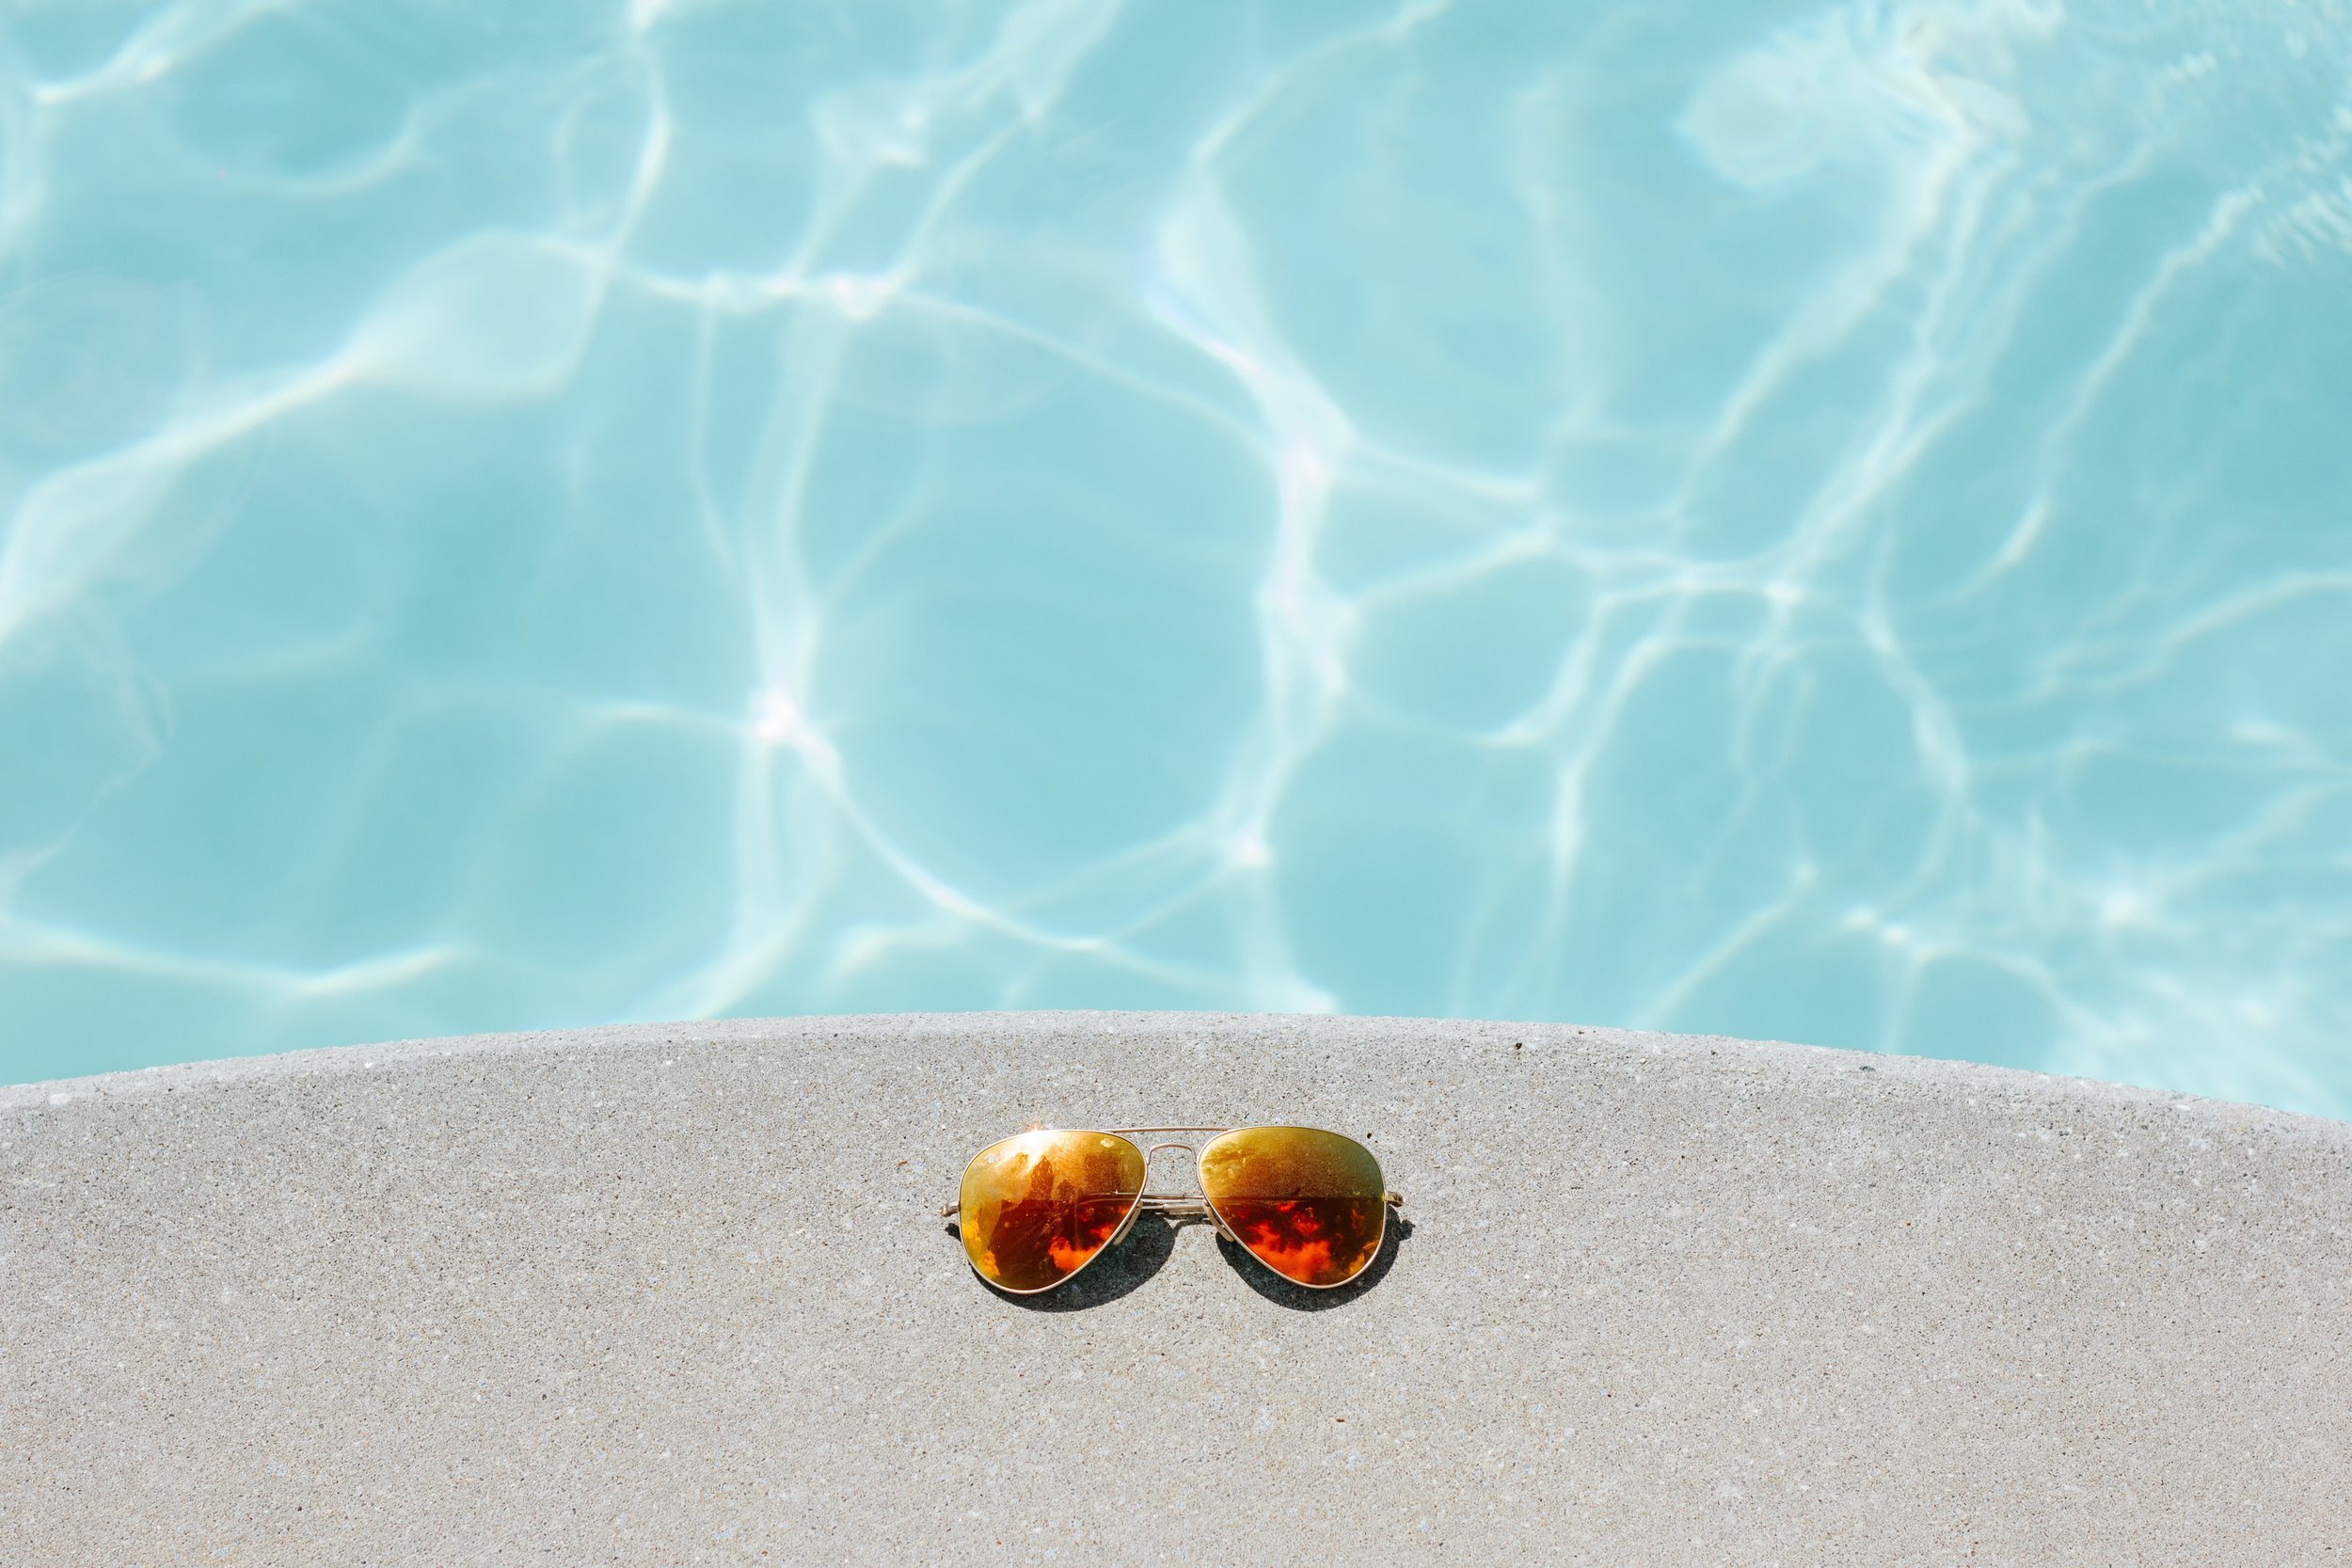 sunglasses at the pool.jpg